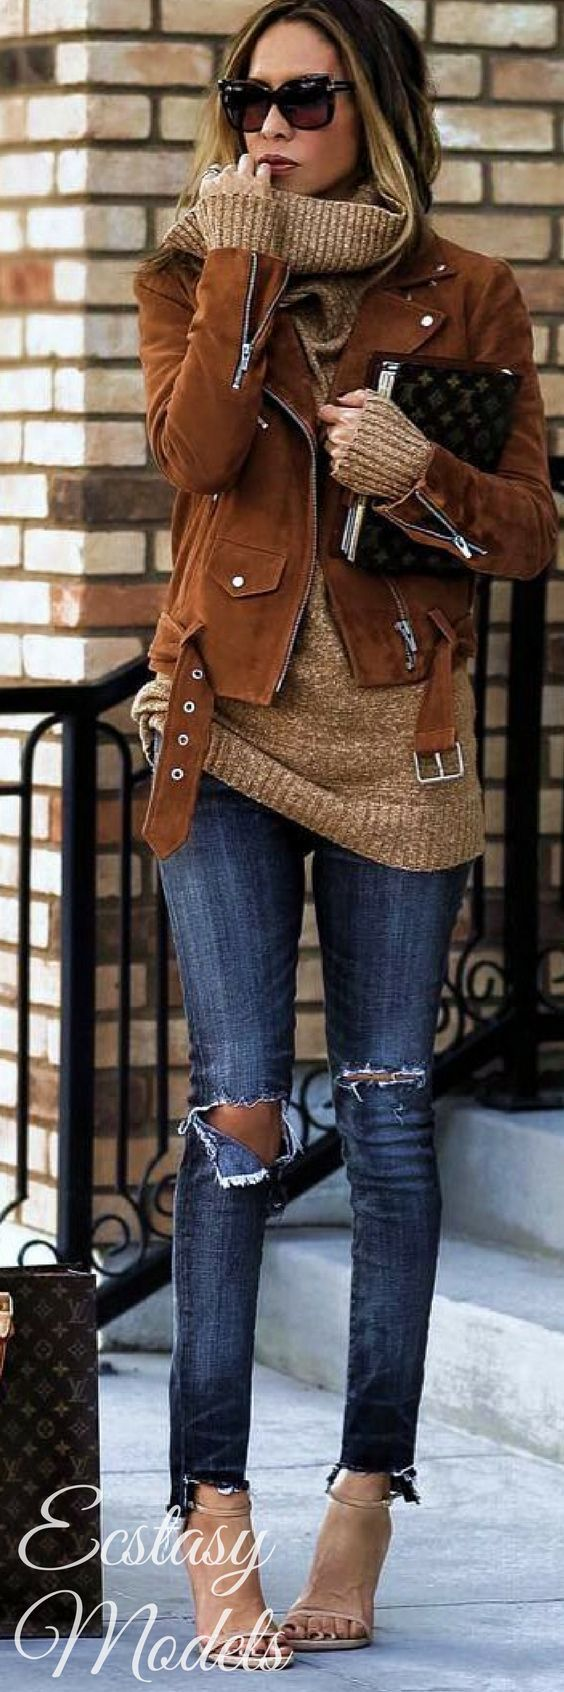 brown coat #StreetFashionStyle